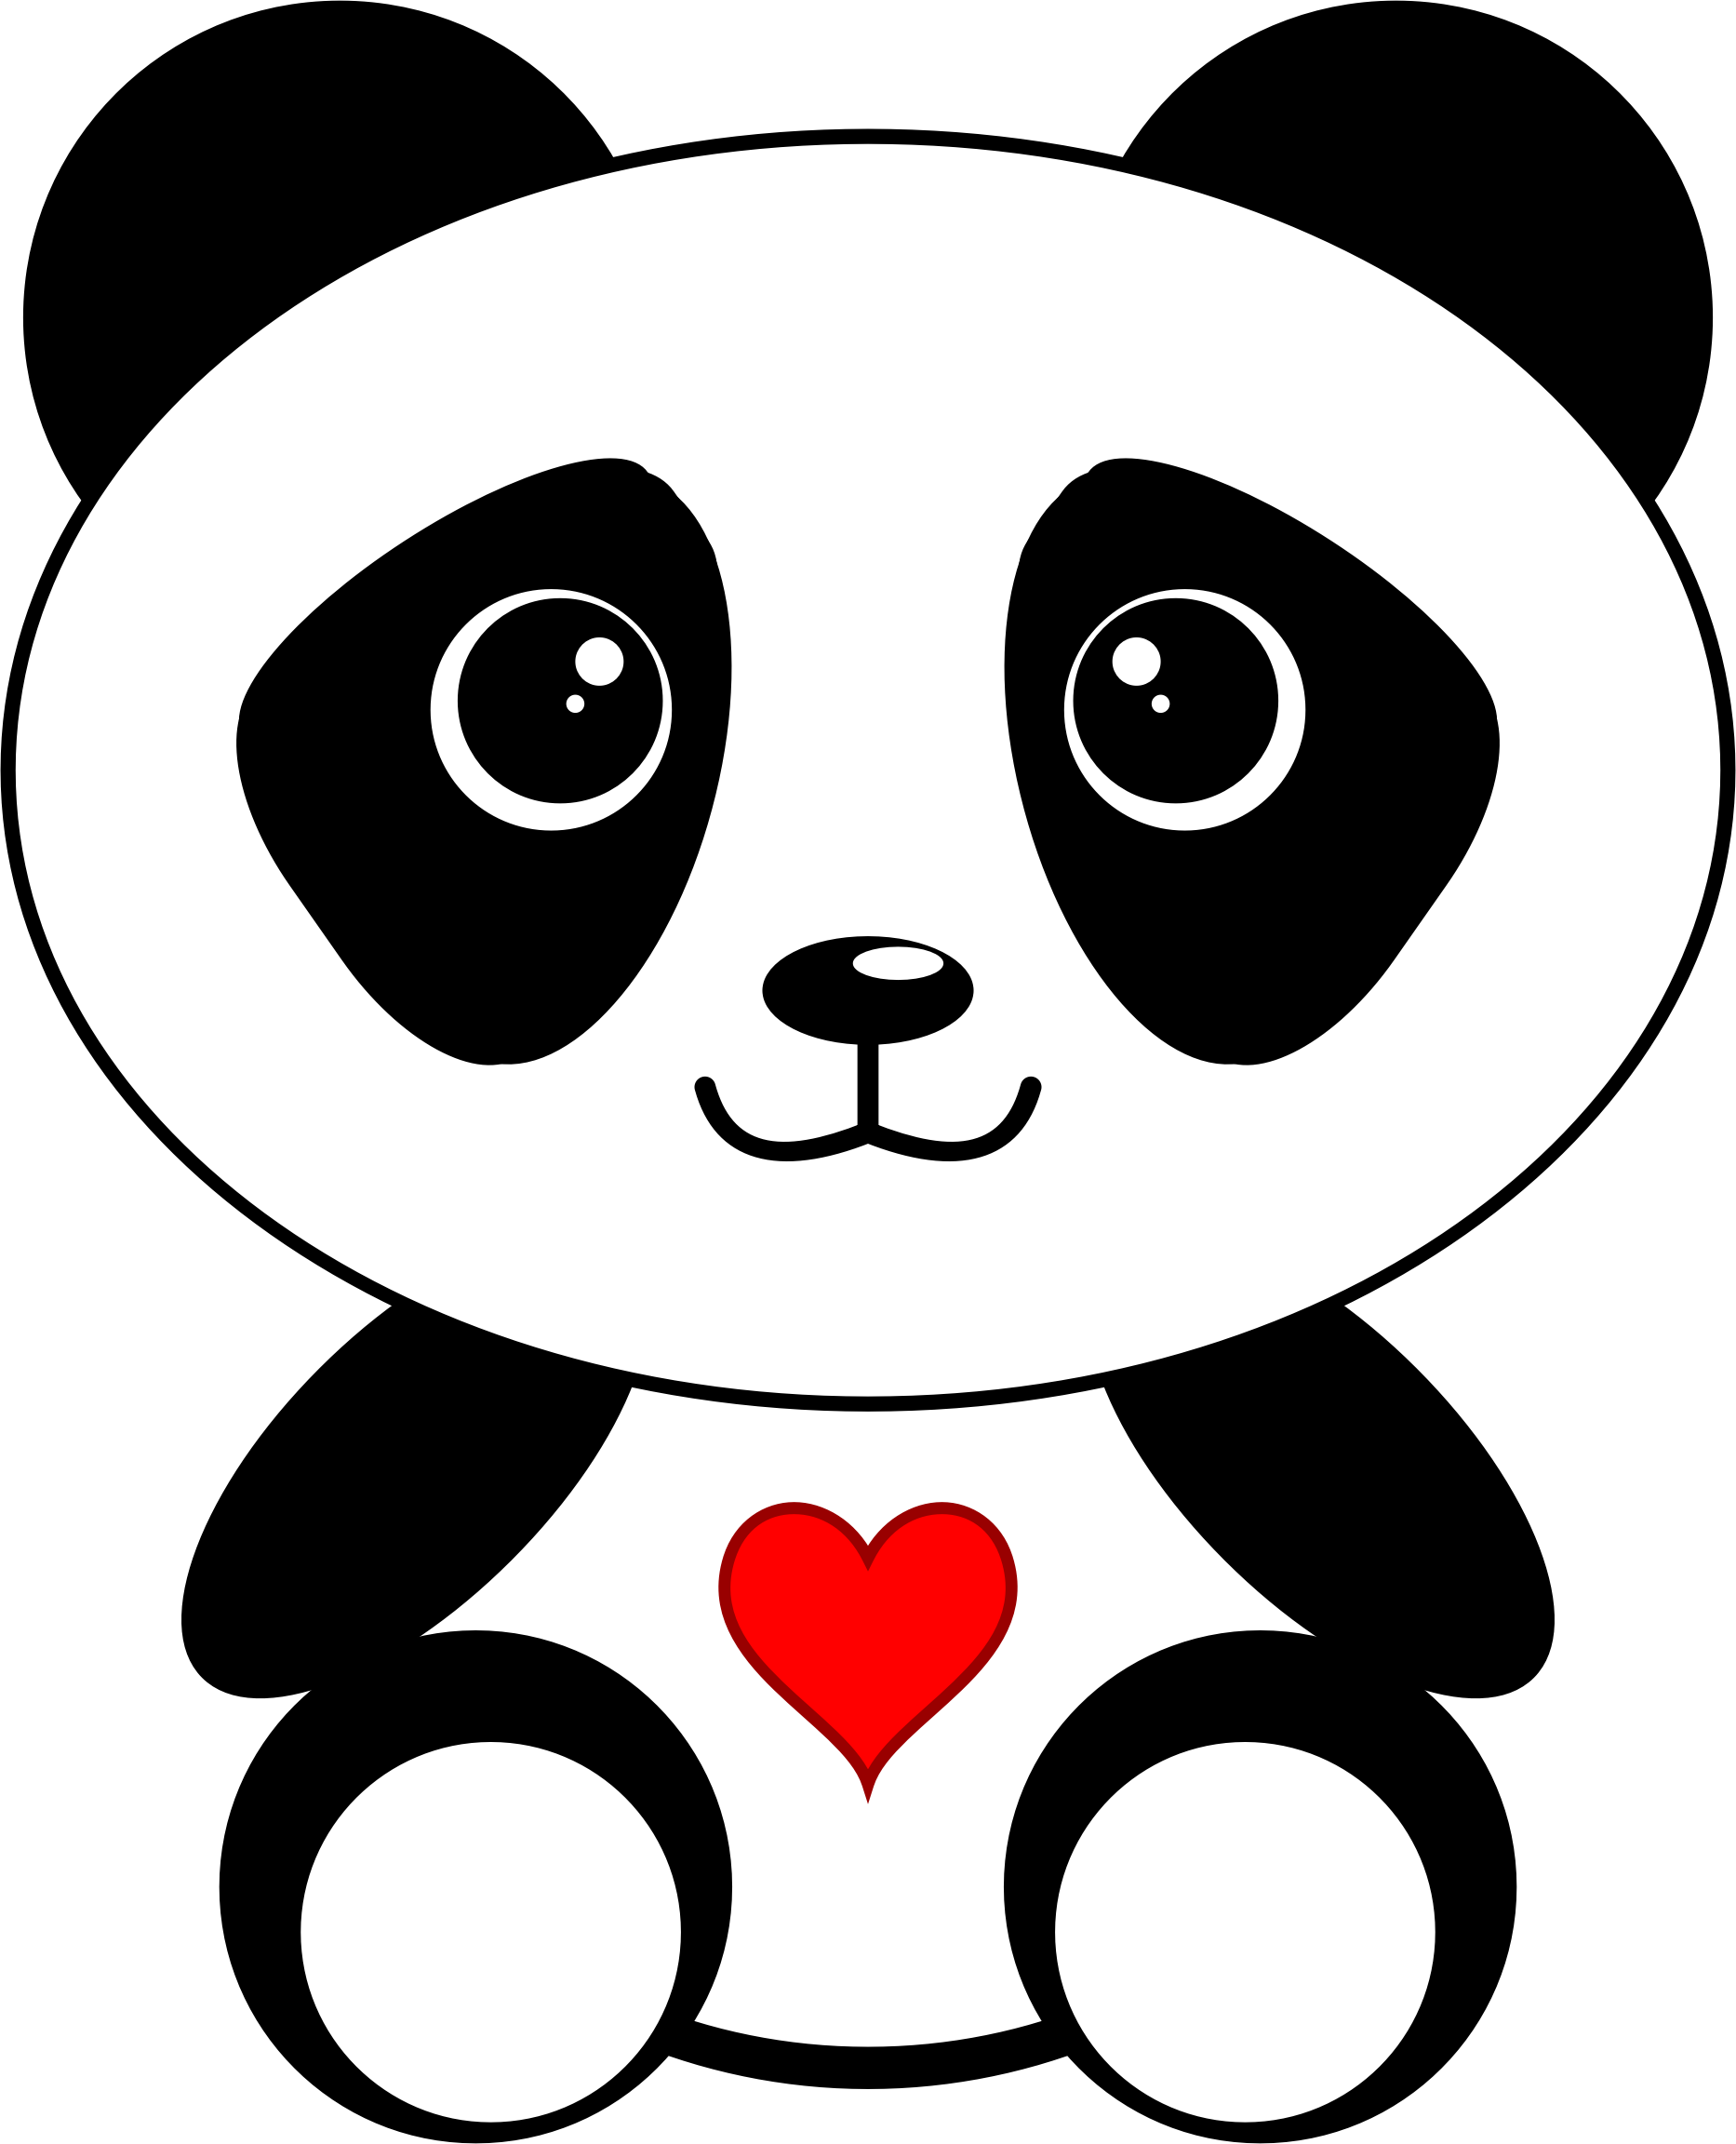 Panda clipart heart. With a big image